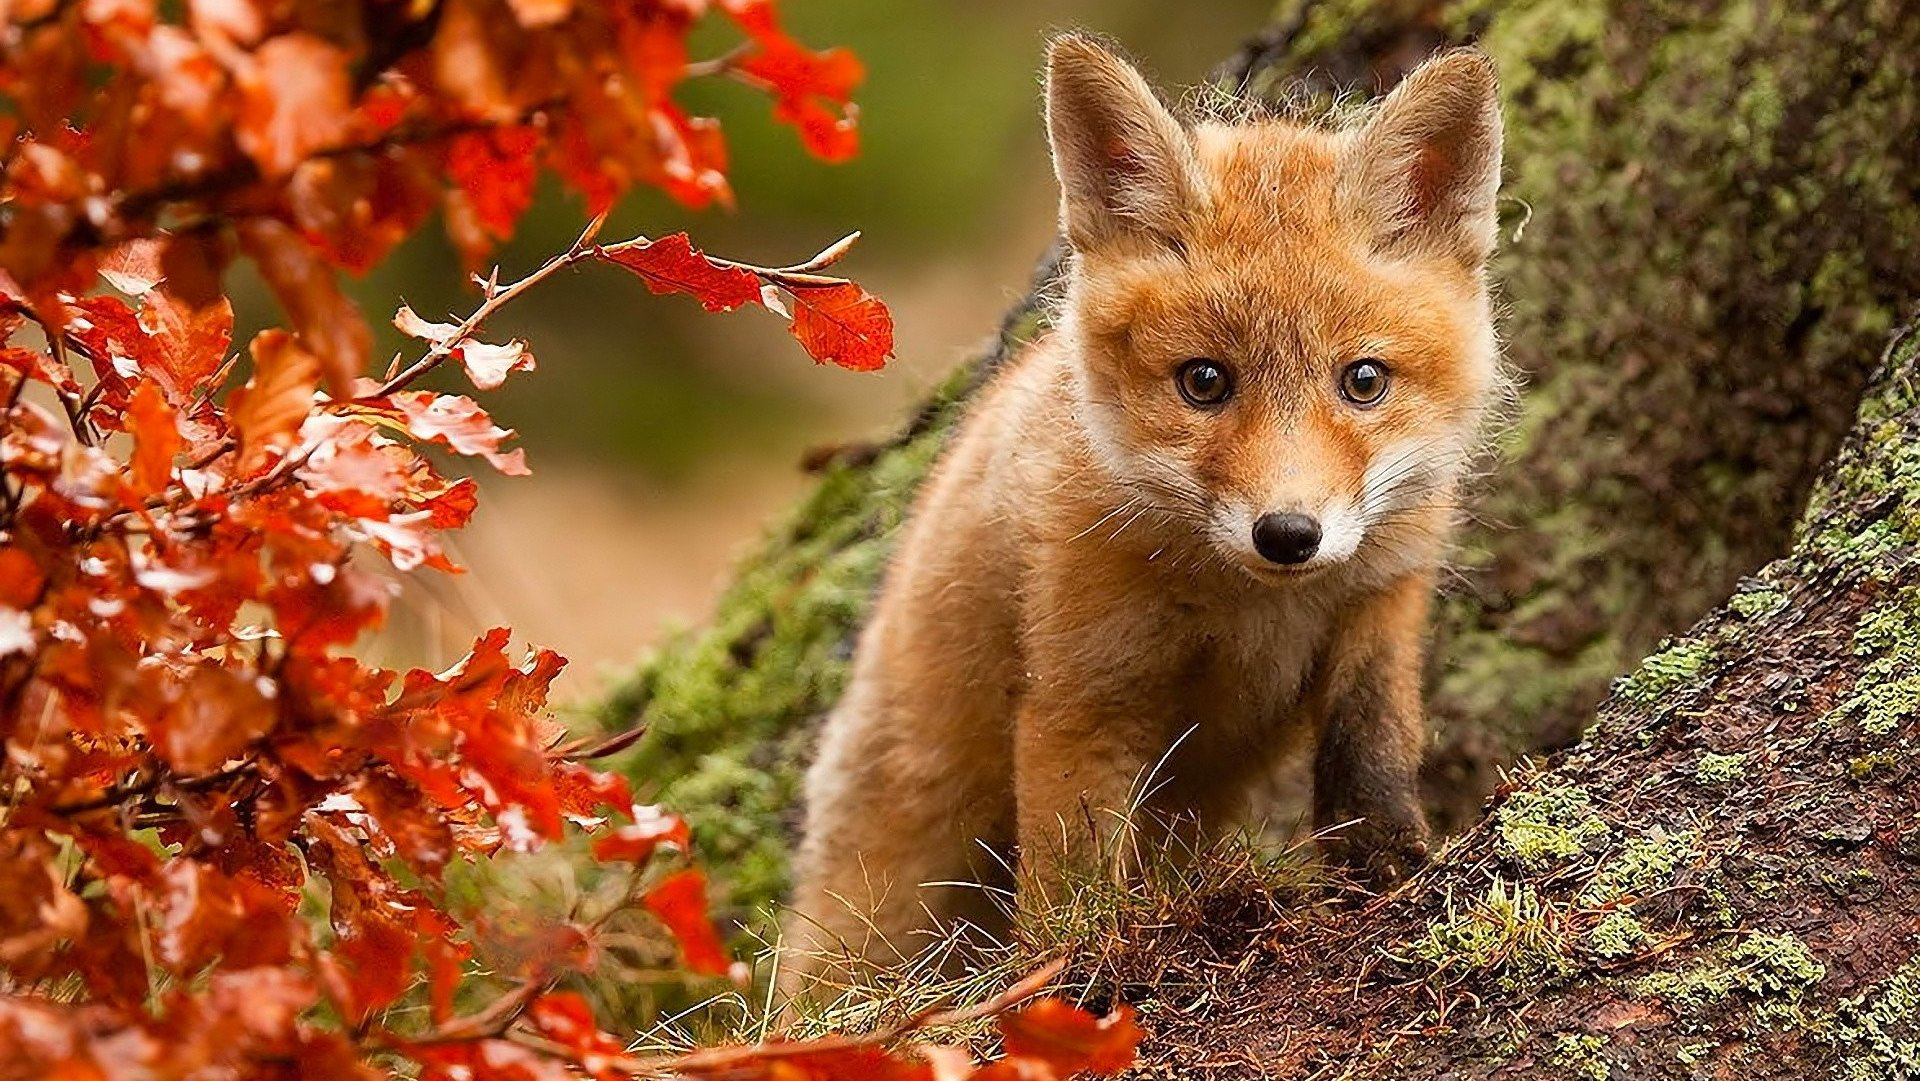 Fox in Autumn Season Photos Wallpapers